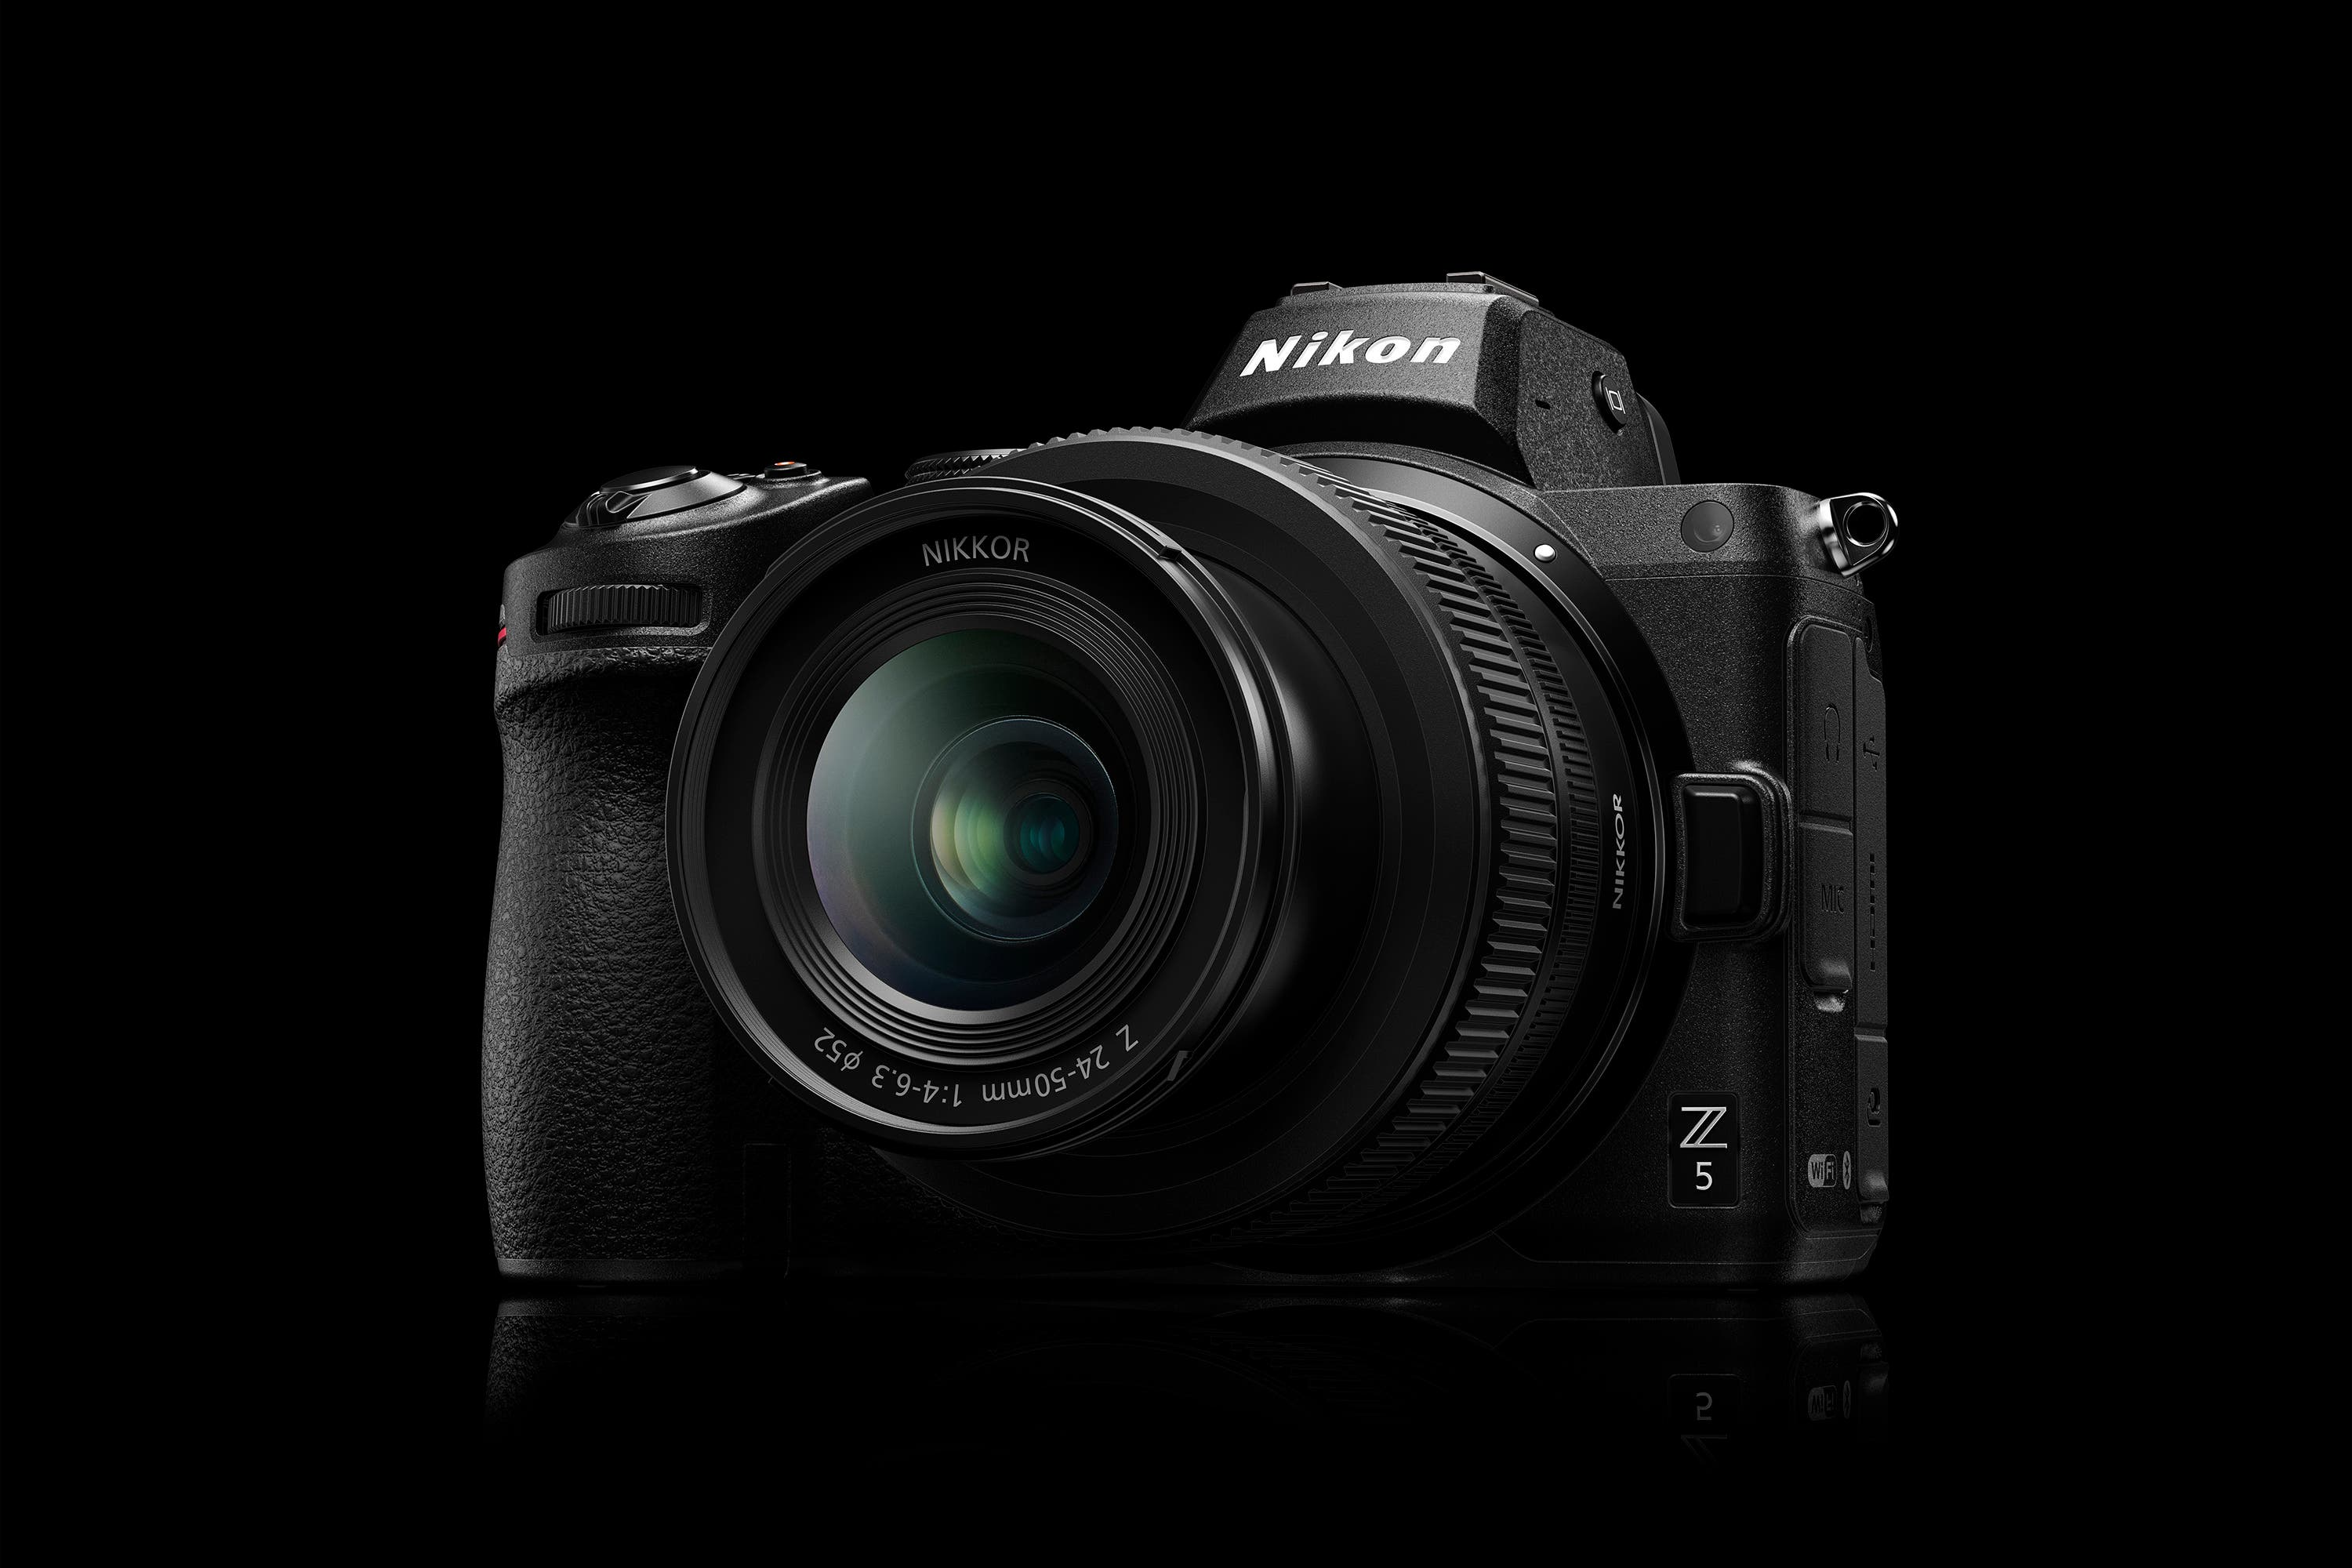 Don't Trade in Your Sony A7III Just Yet, the Nikon Z5 Looks Pretty Gimped